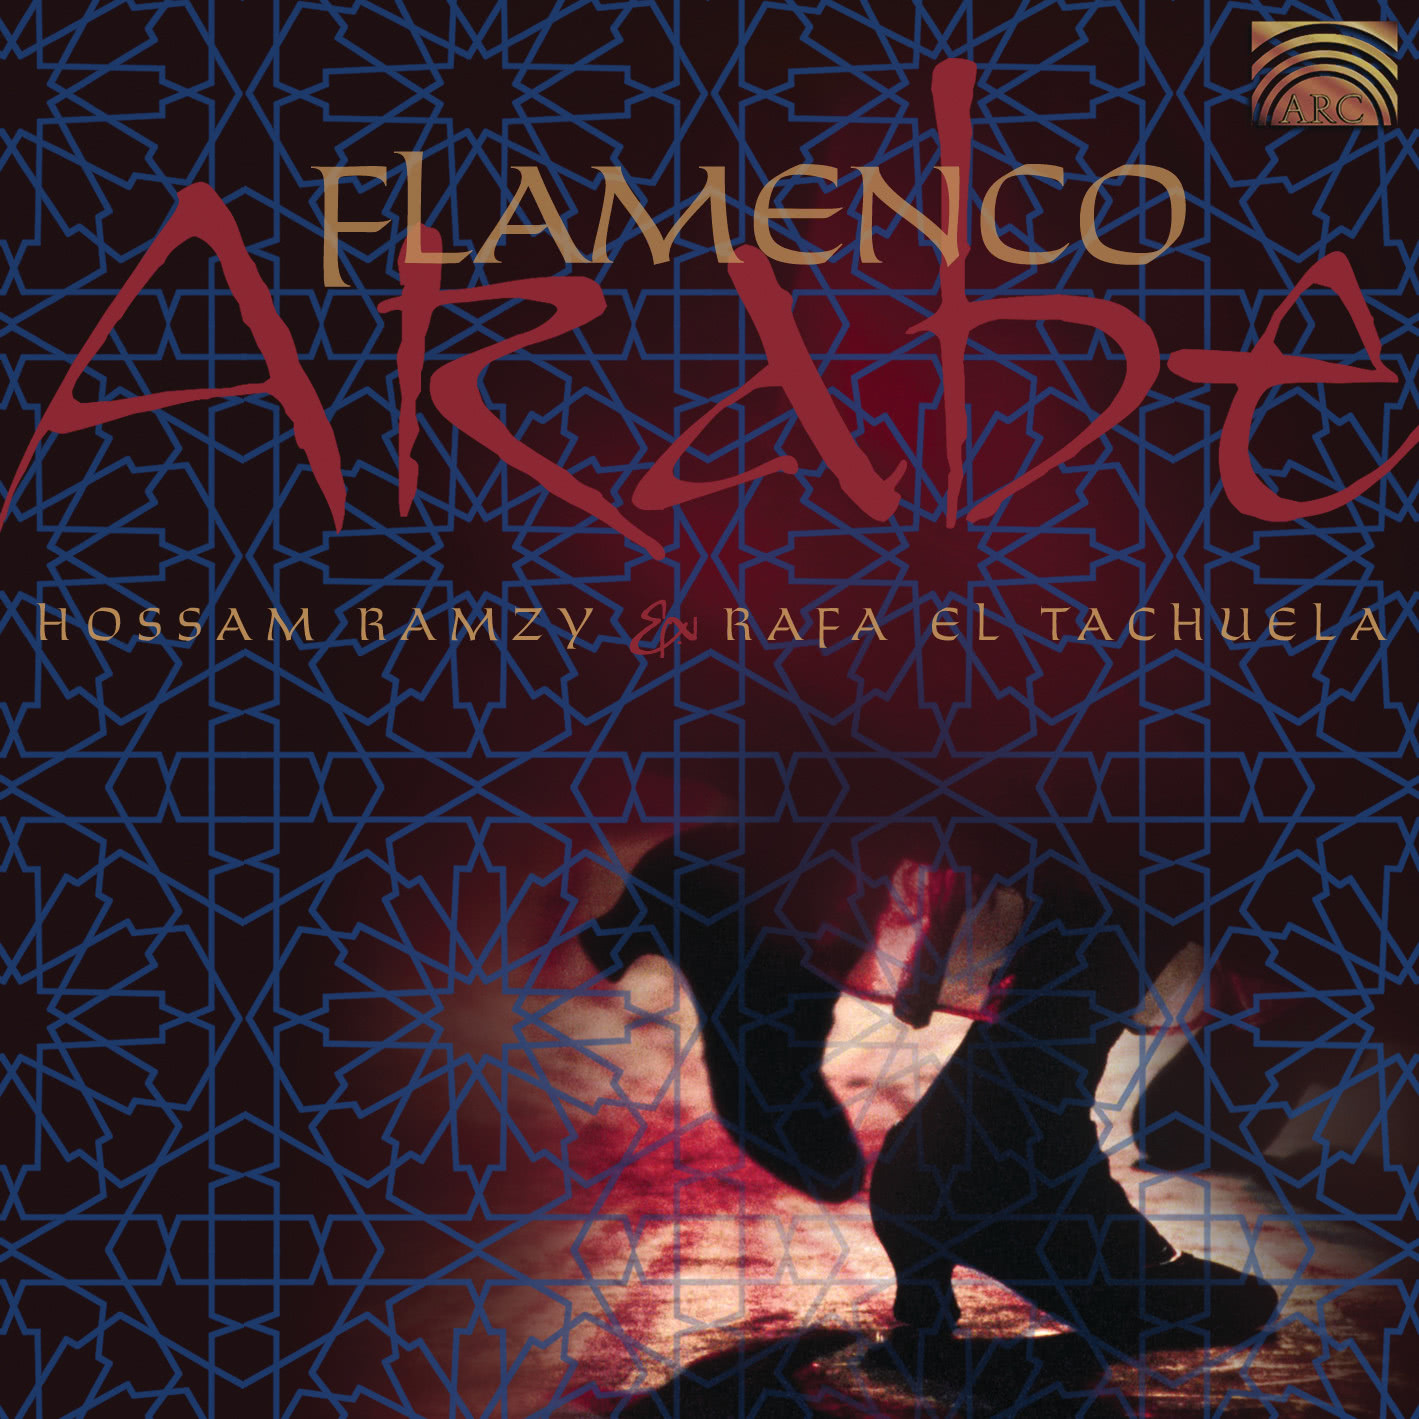 EUCD1785 Flamenco Arabe